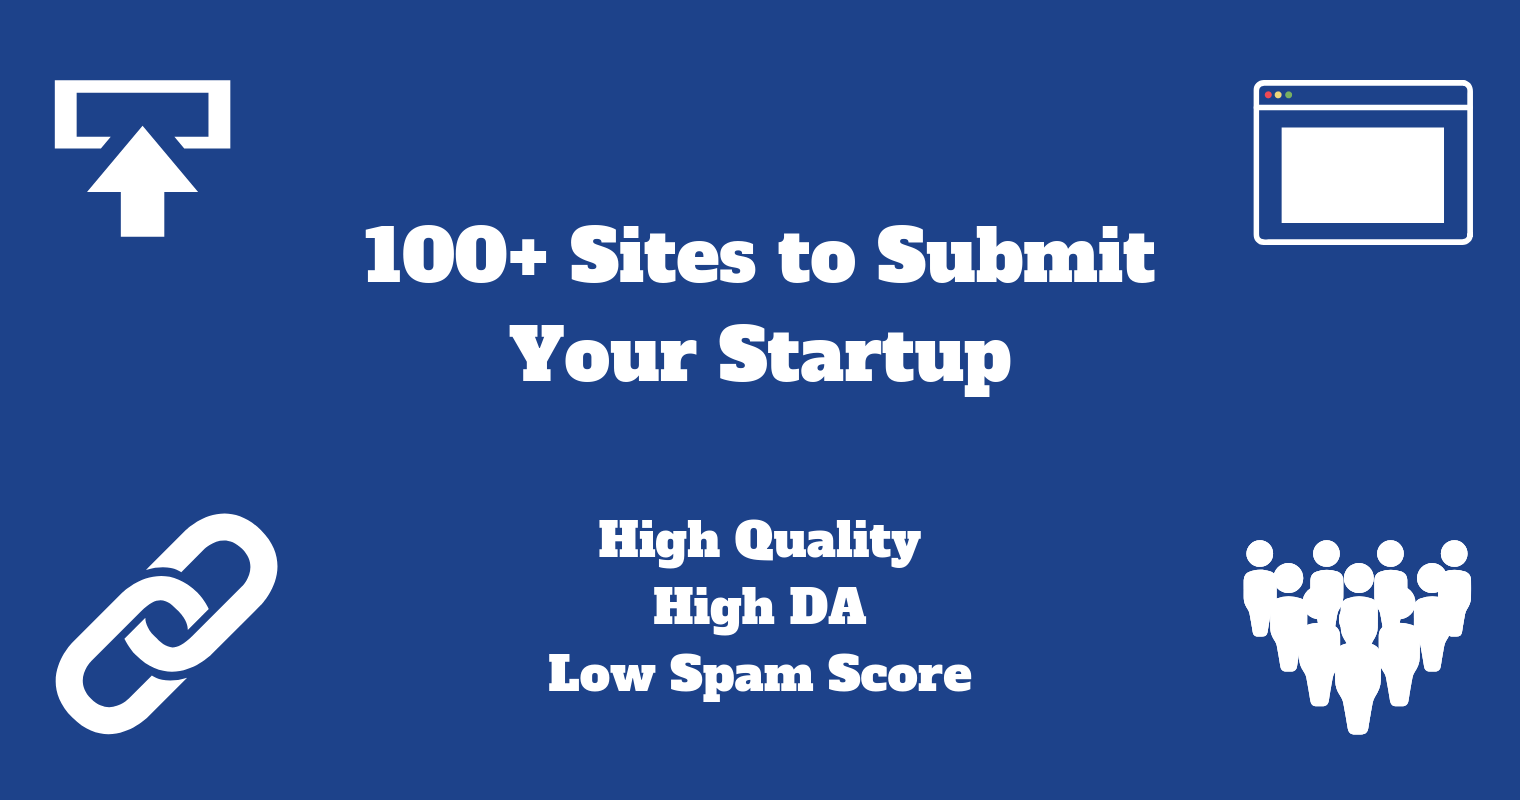 100+ Sites to Submit Your Startup (High Quality, High DA, Low Spam Score)